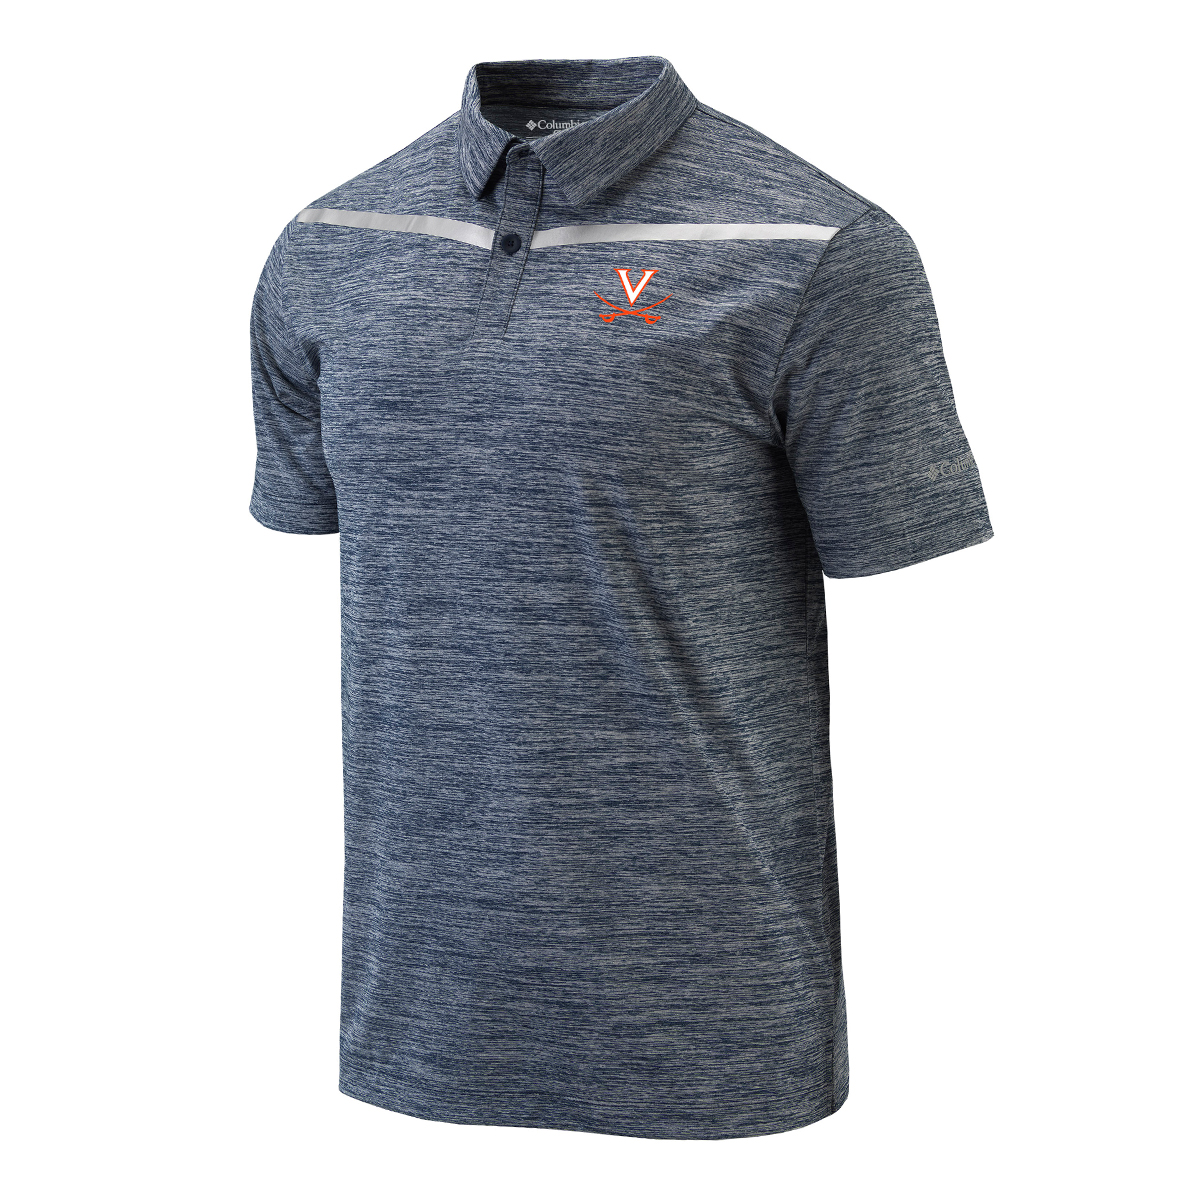 University of Virginia Columbia Reflective Tape Polo